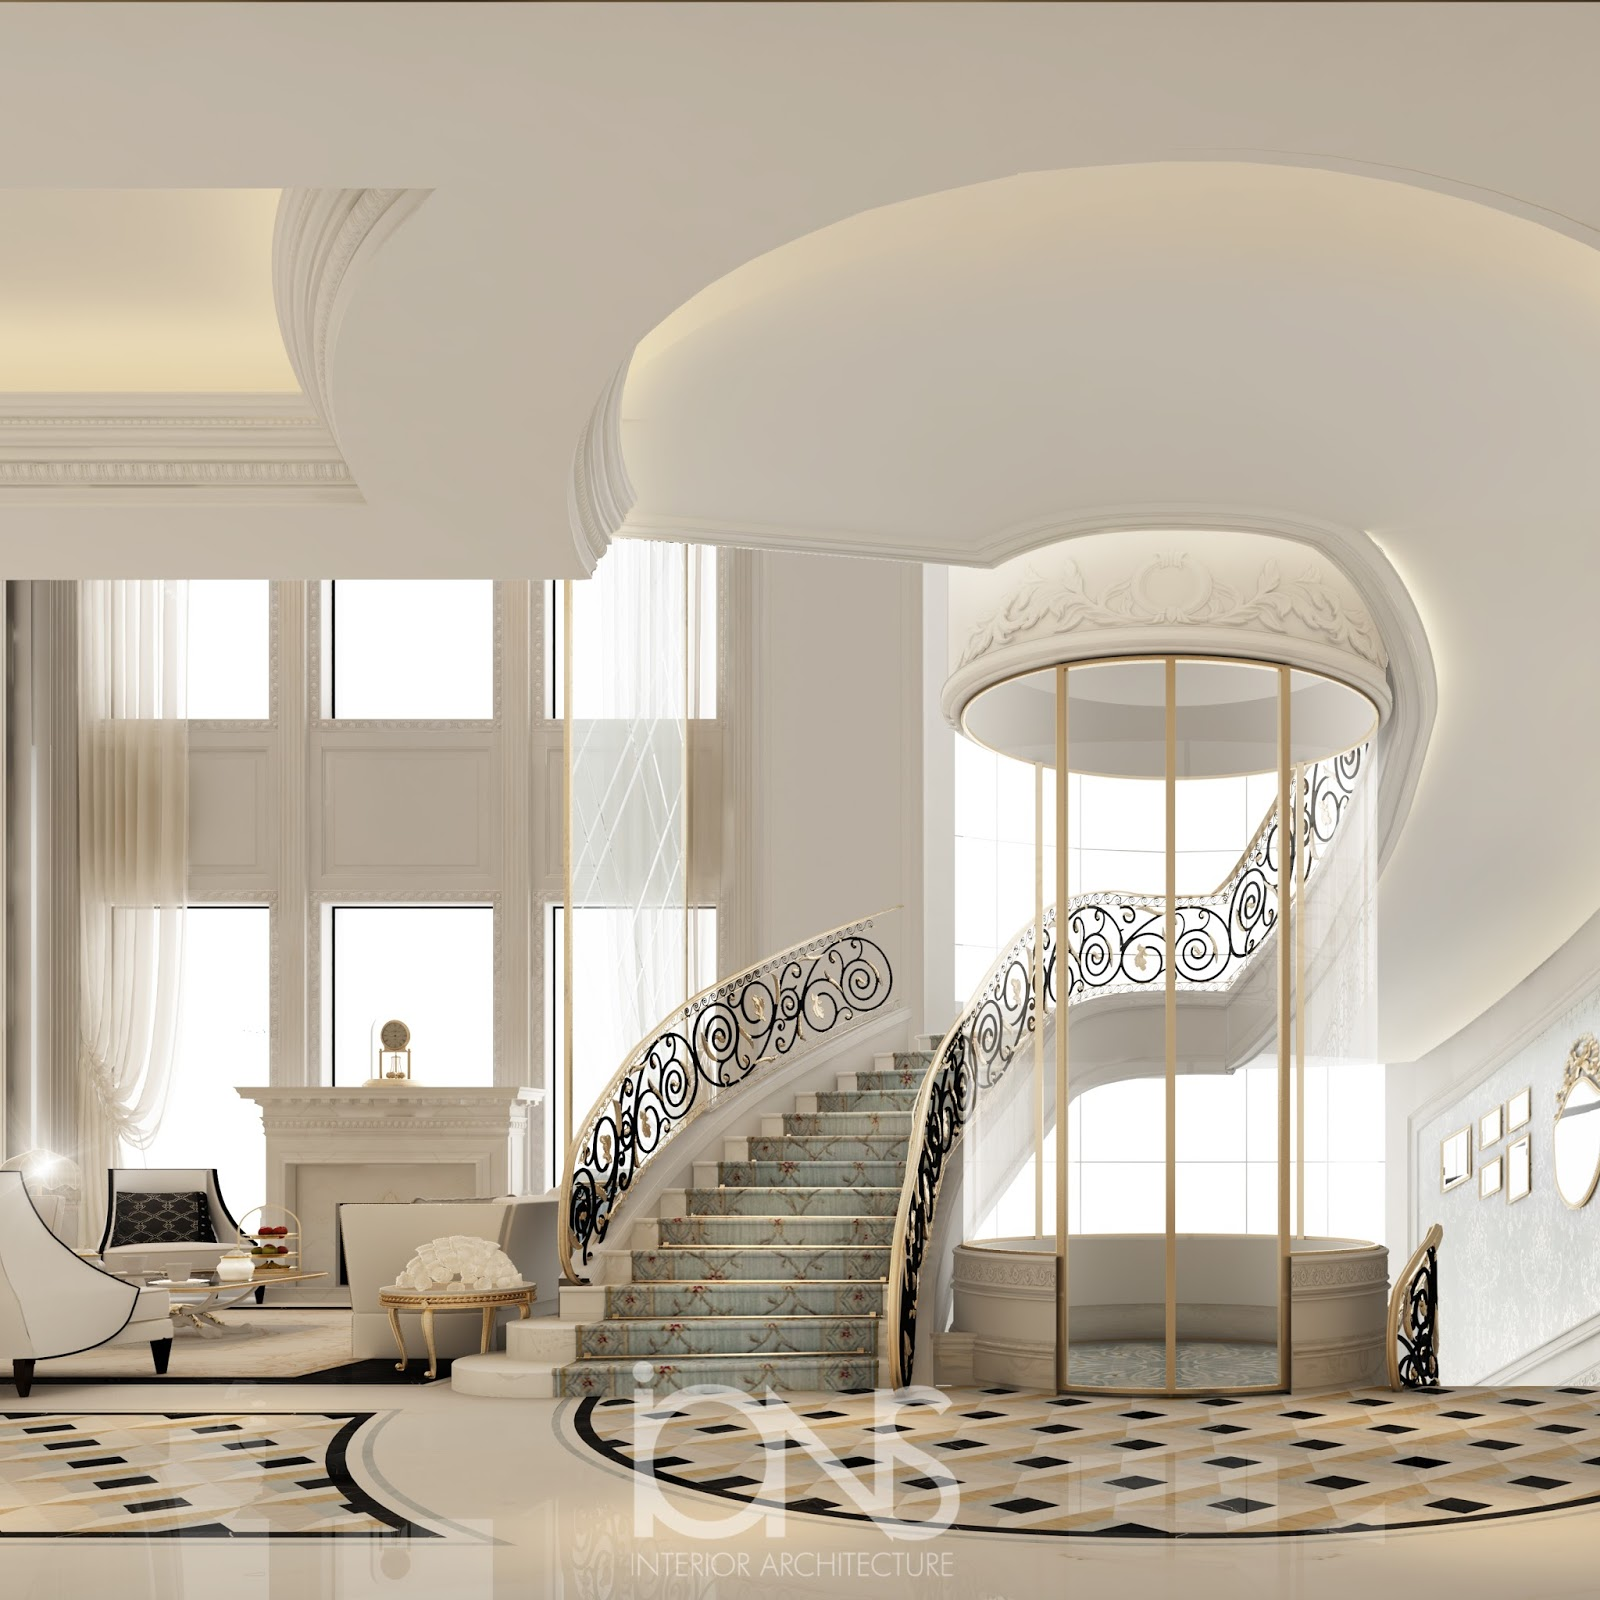 Dubai interior design company interior design ideas for for Interior design companies